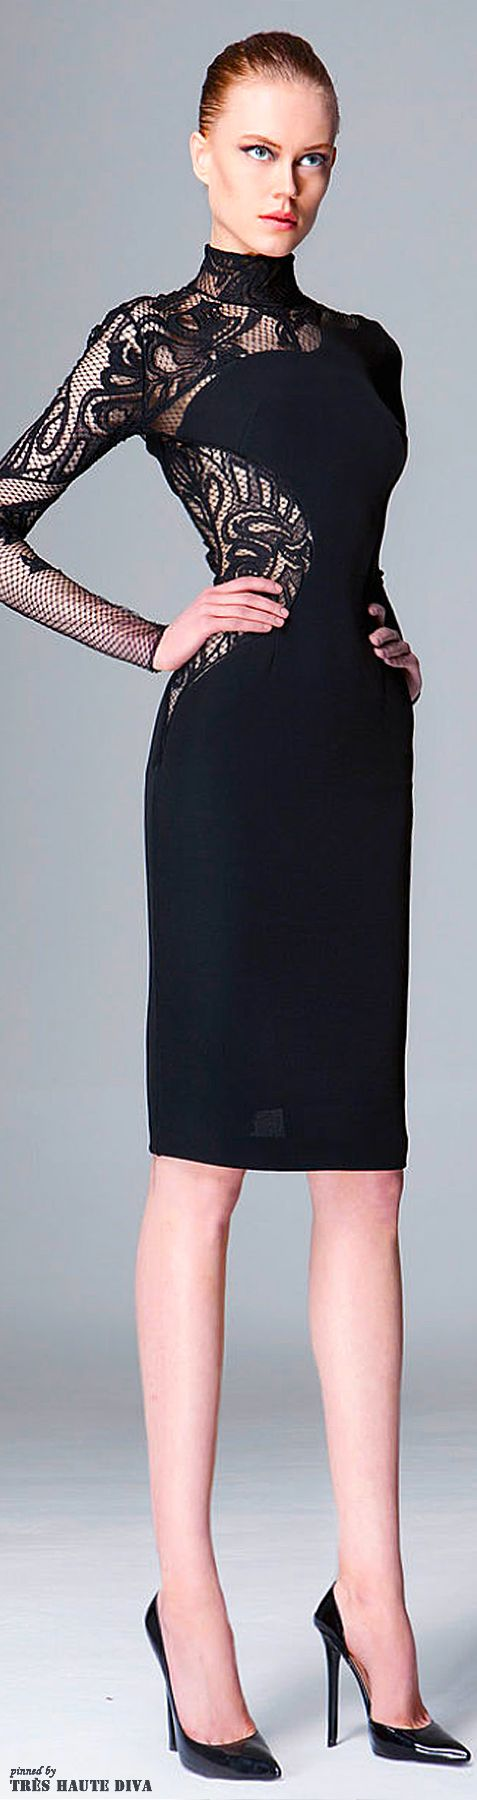 Zuhair Murad Pre-Fall 2014 black cocktail dress with lace inserts